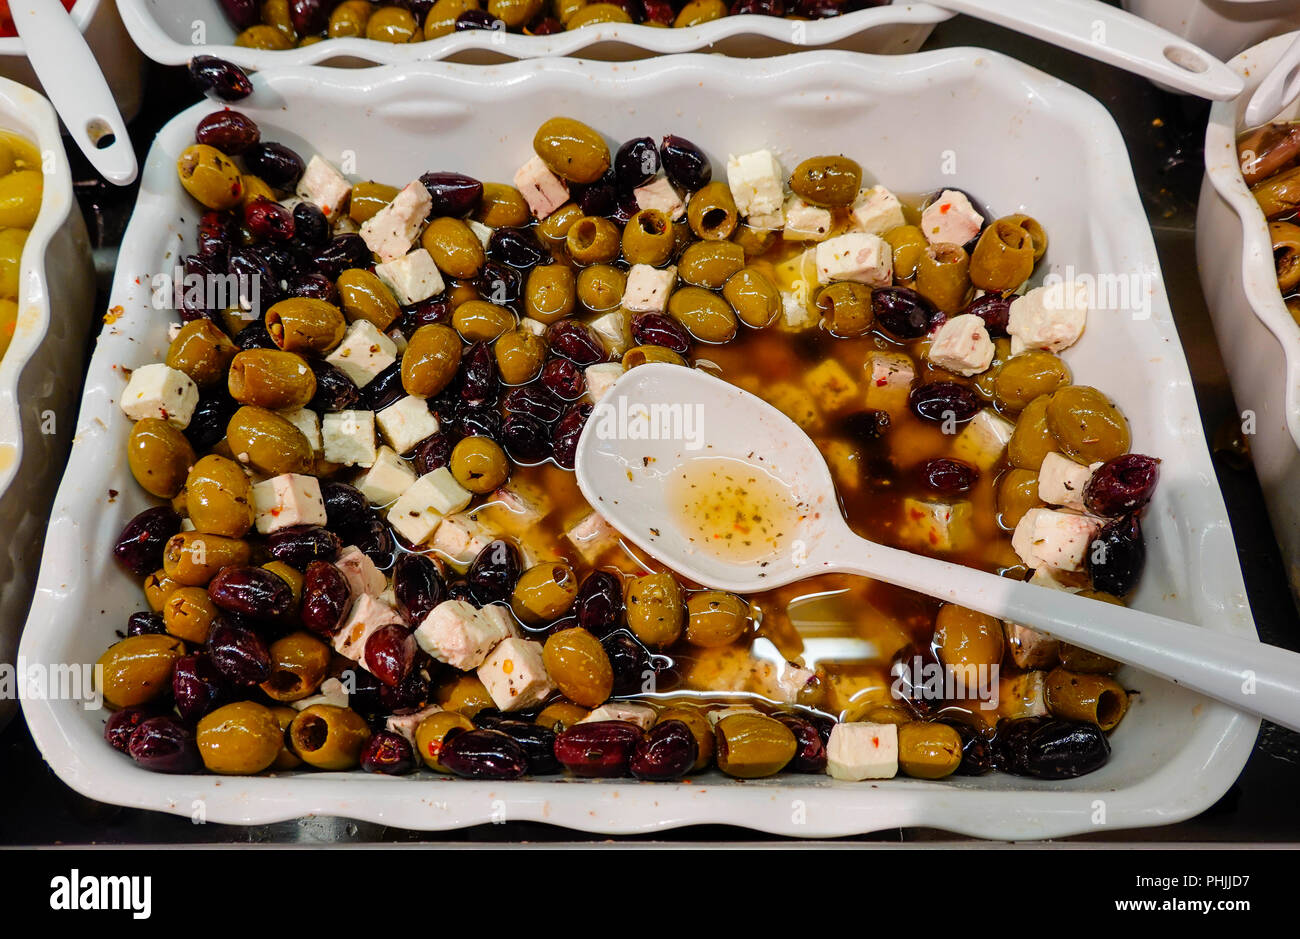 Olives and other savories in a cold ready to eat selection in a supermarket - Stock Image